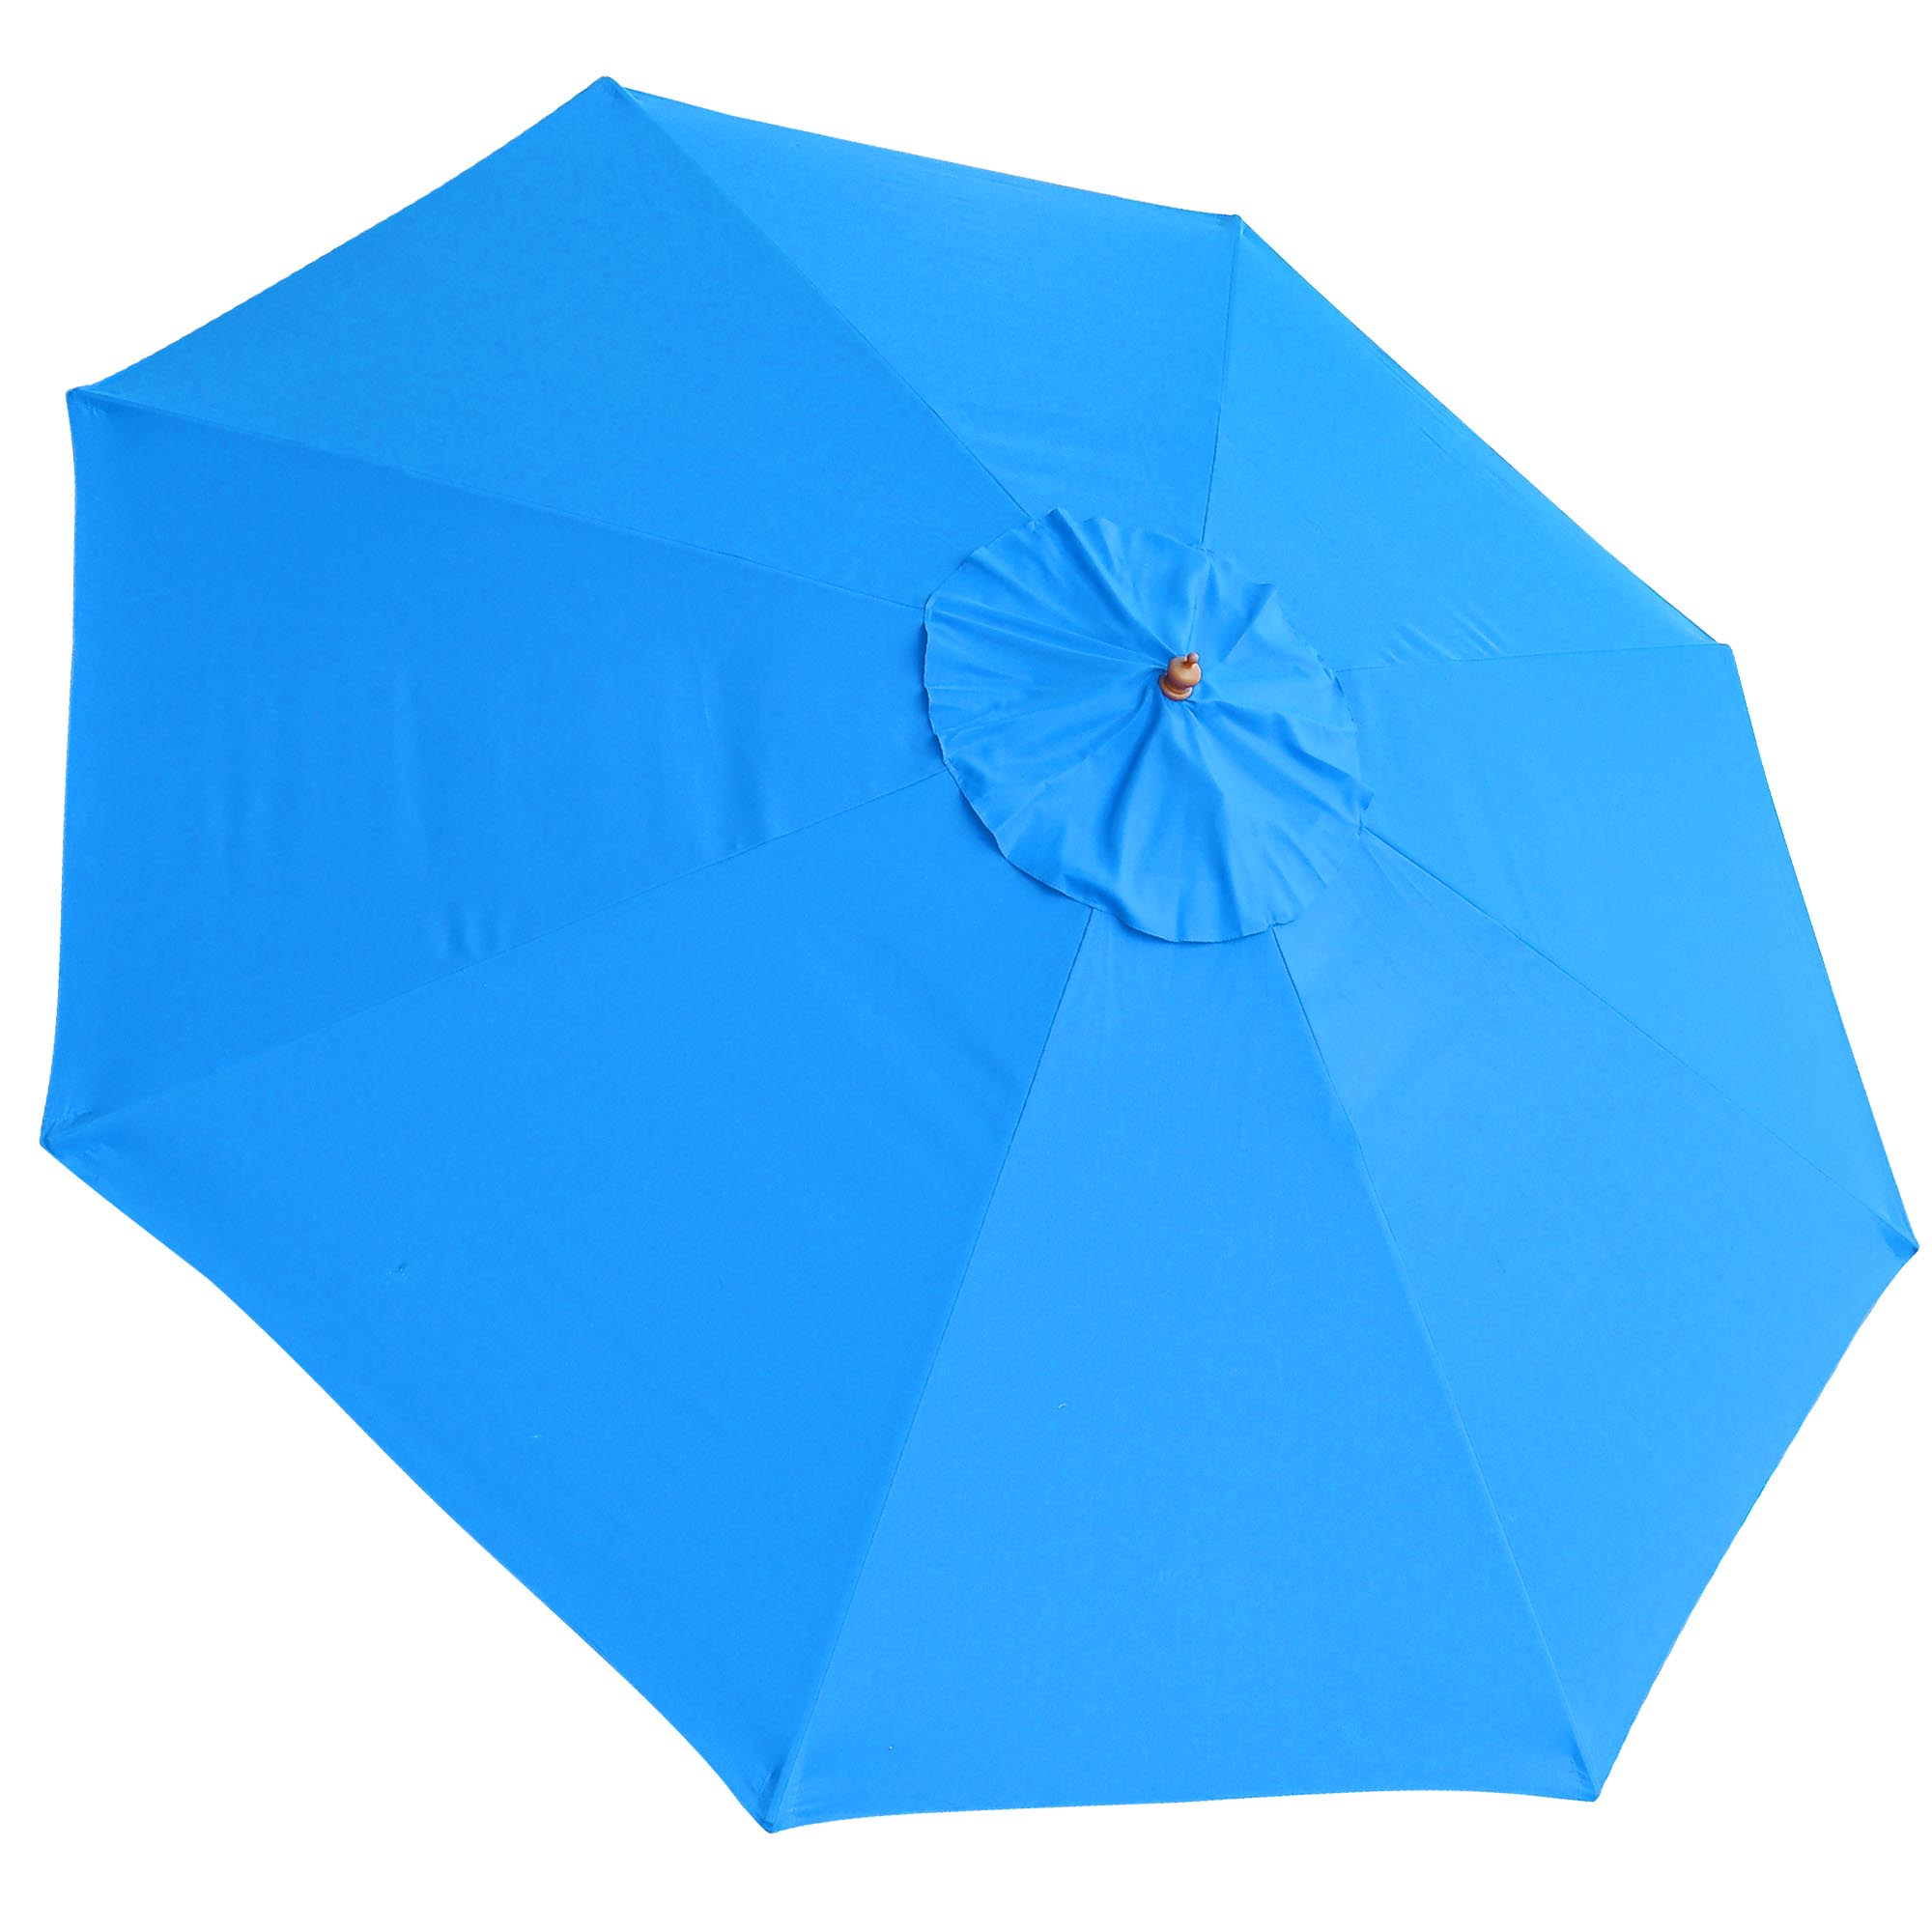 Patio Umbrella Replacement Canopy: 13FT Umbrella Replacement Canopy Cover 8 Ribs Outdoor